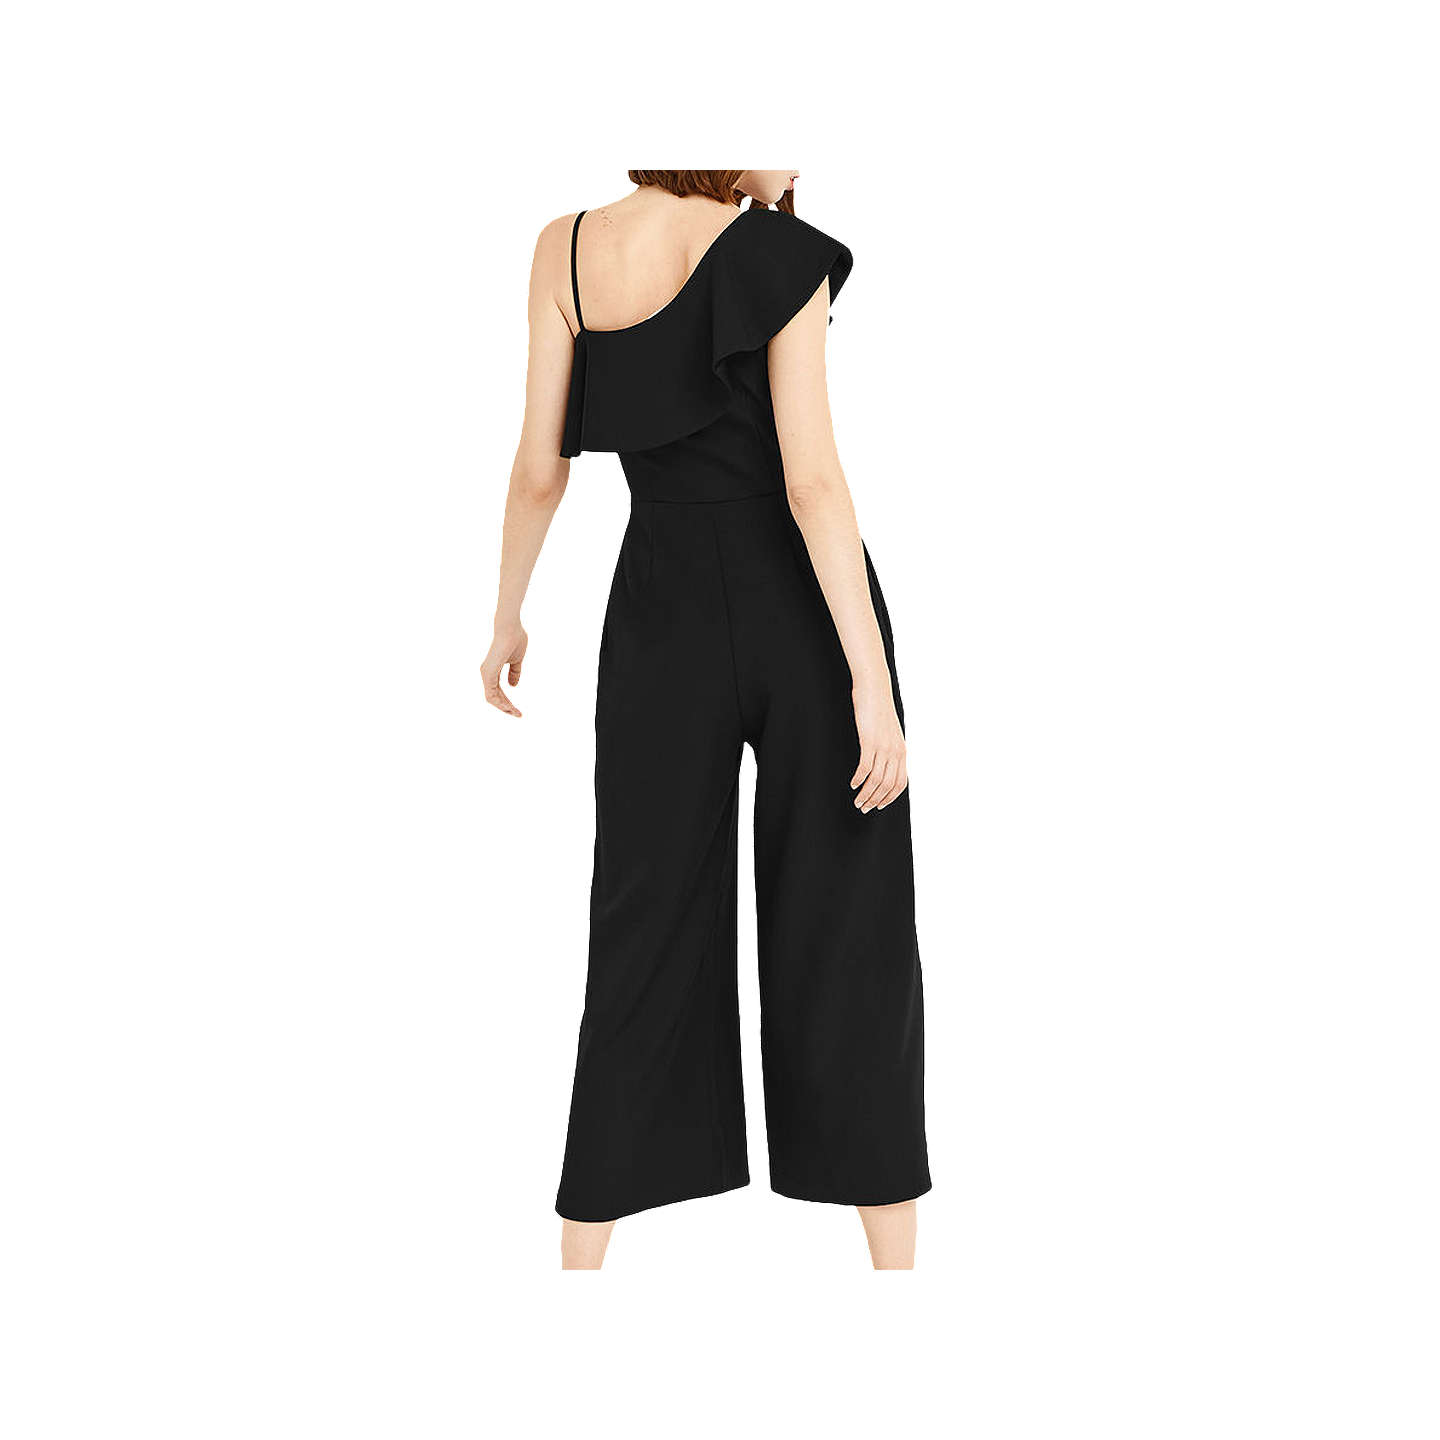 BuyOasis One Shoulder Jumpsuit, Black, 6 Online at johnlewis.com